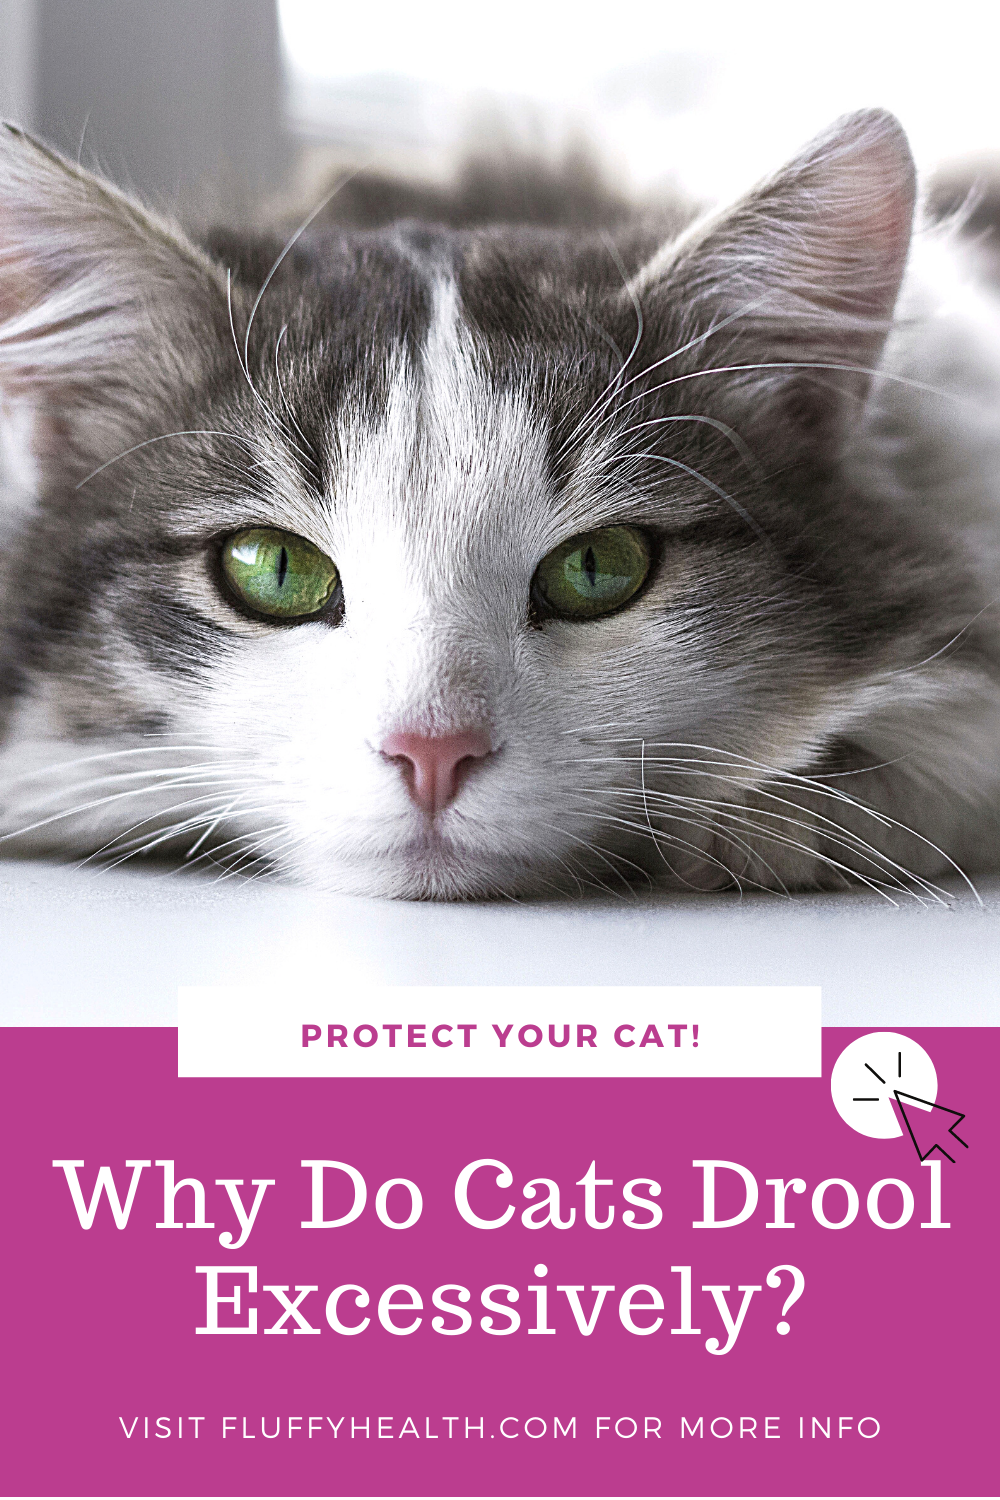 Why-Do-Cats-Drool-Excessively